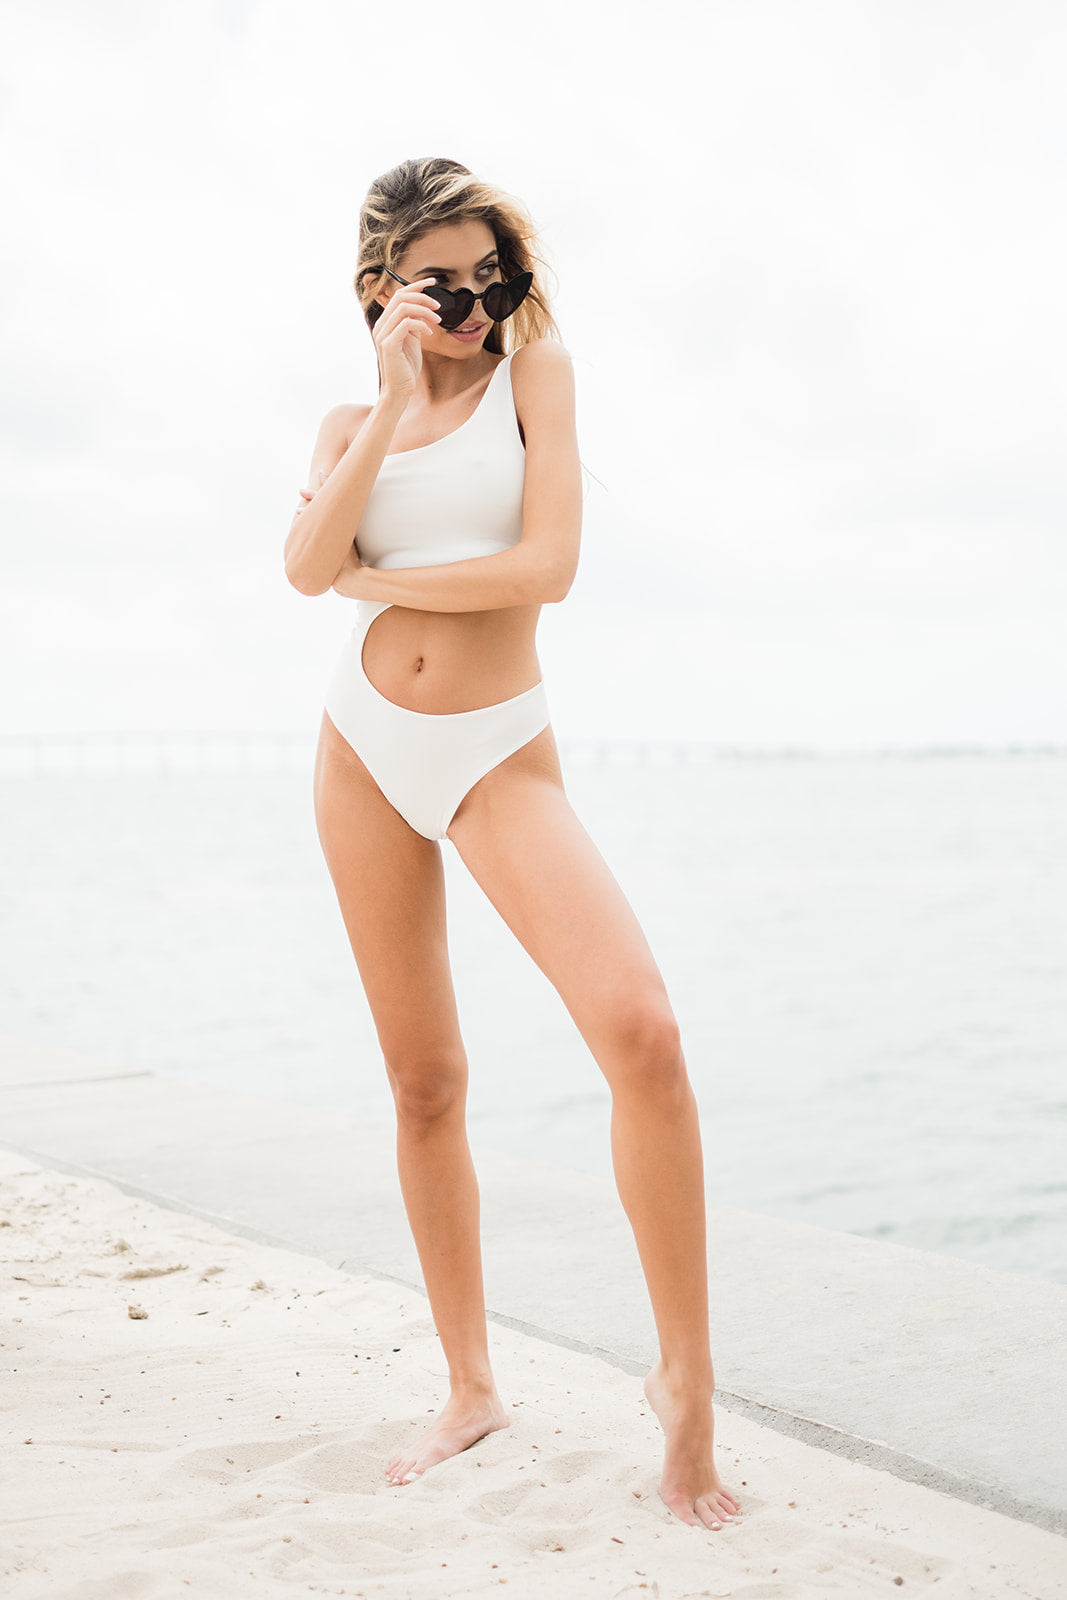 The Tulum One Piece Bathing Suit - The Beach Bride by Chic Parisien, a destination for beach weddings, bachelorettes and honeymoons